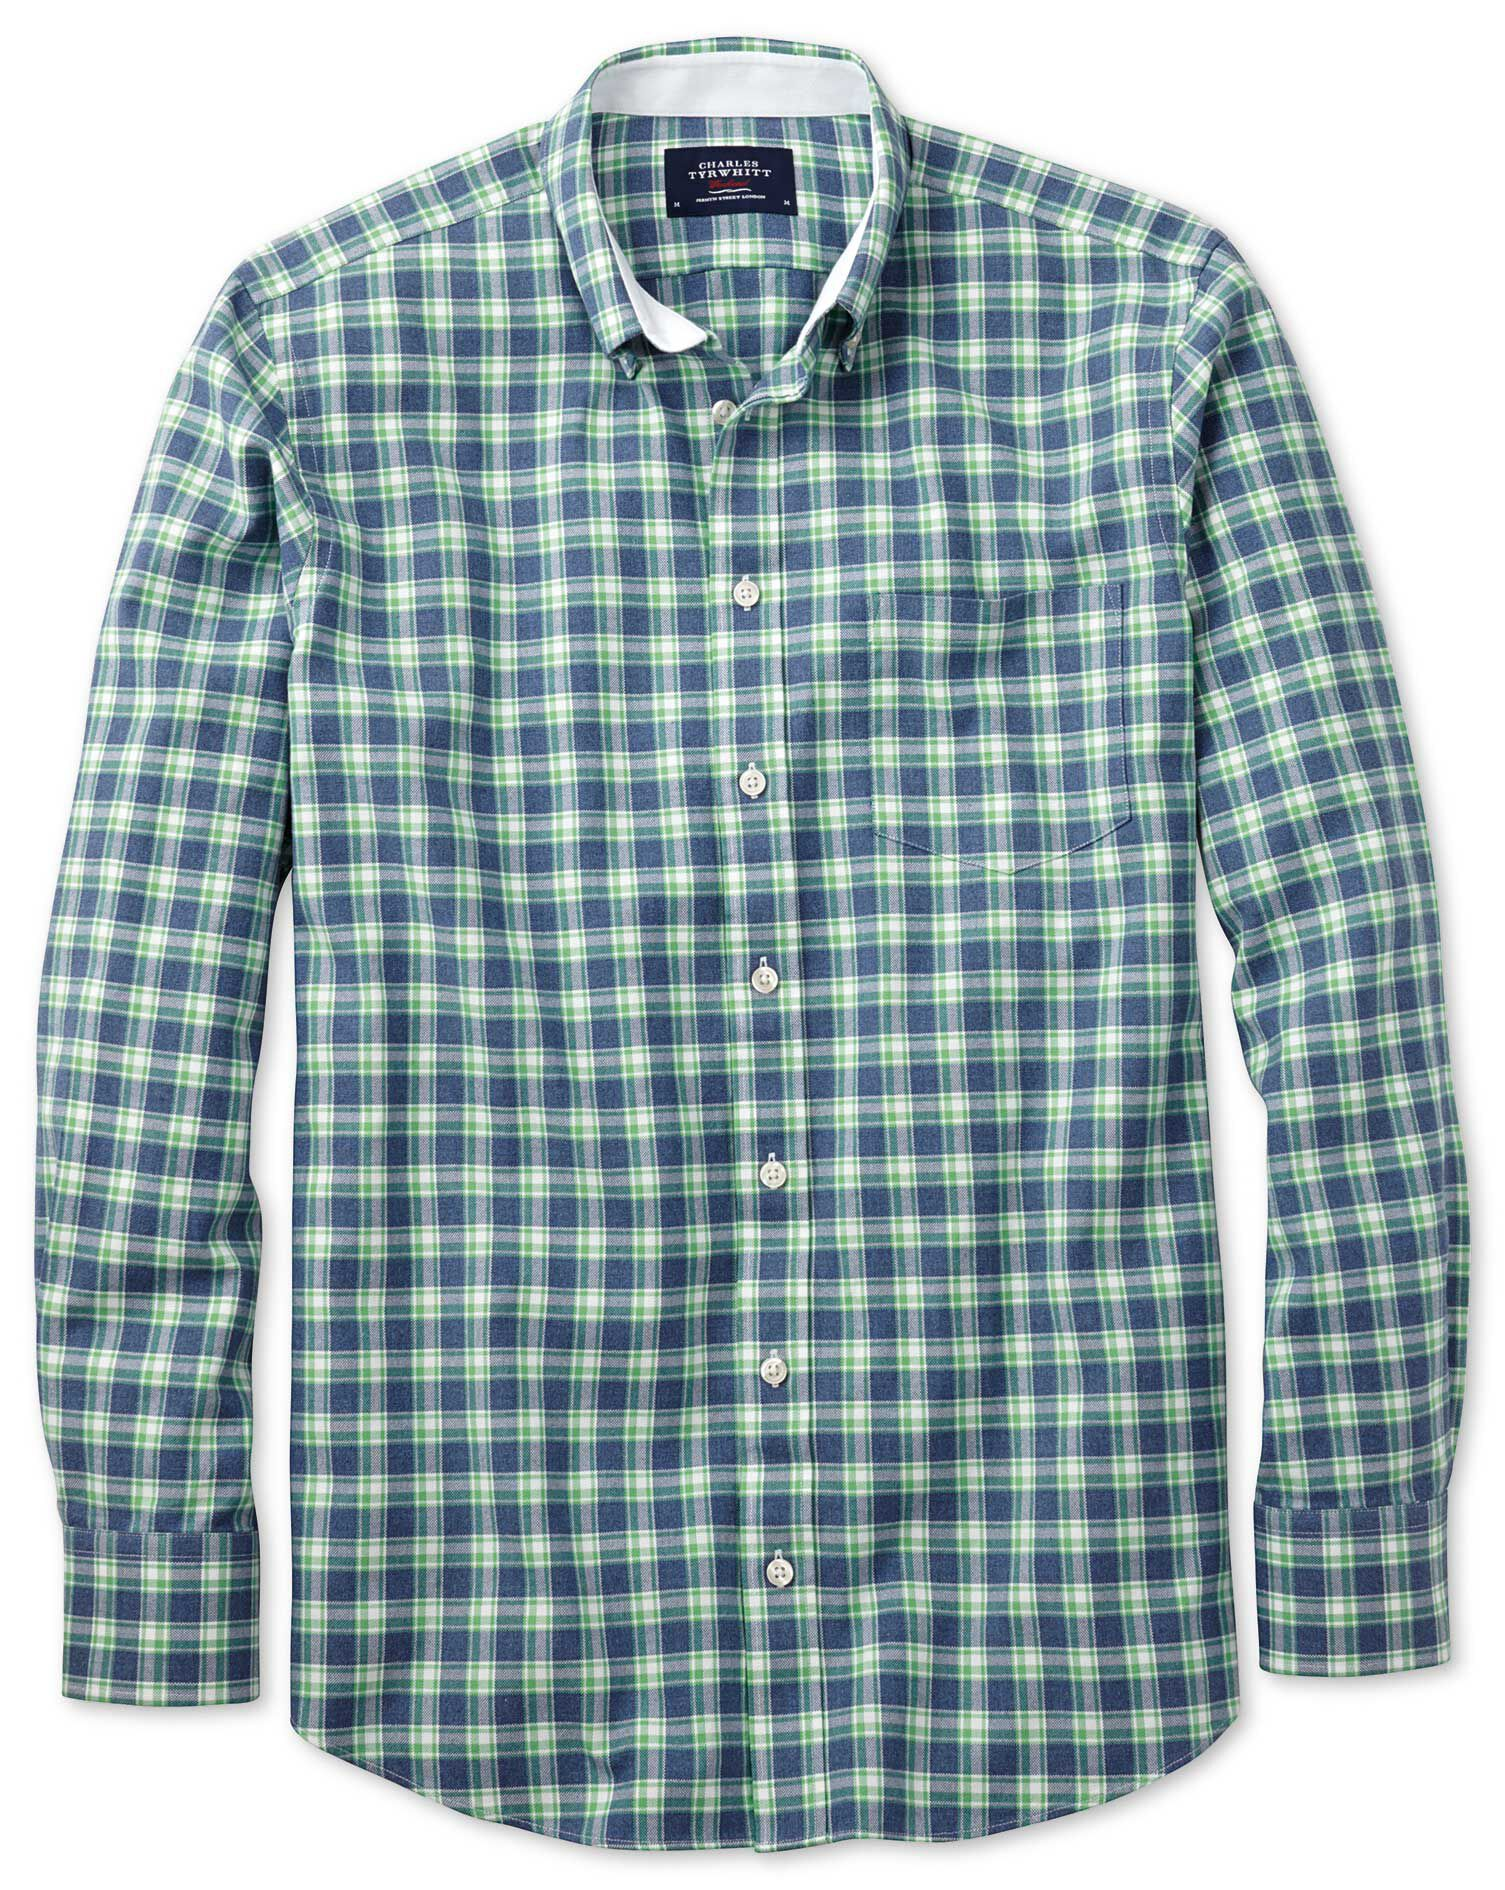 Extra Slim Fit Blue and Green Check Washed Oxford Cotton Shirt Single Cuff Size Medium by Charles Ty